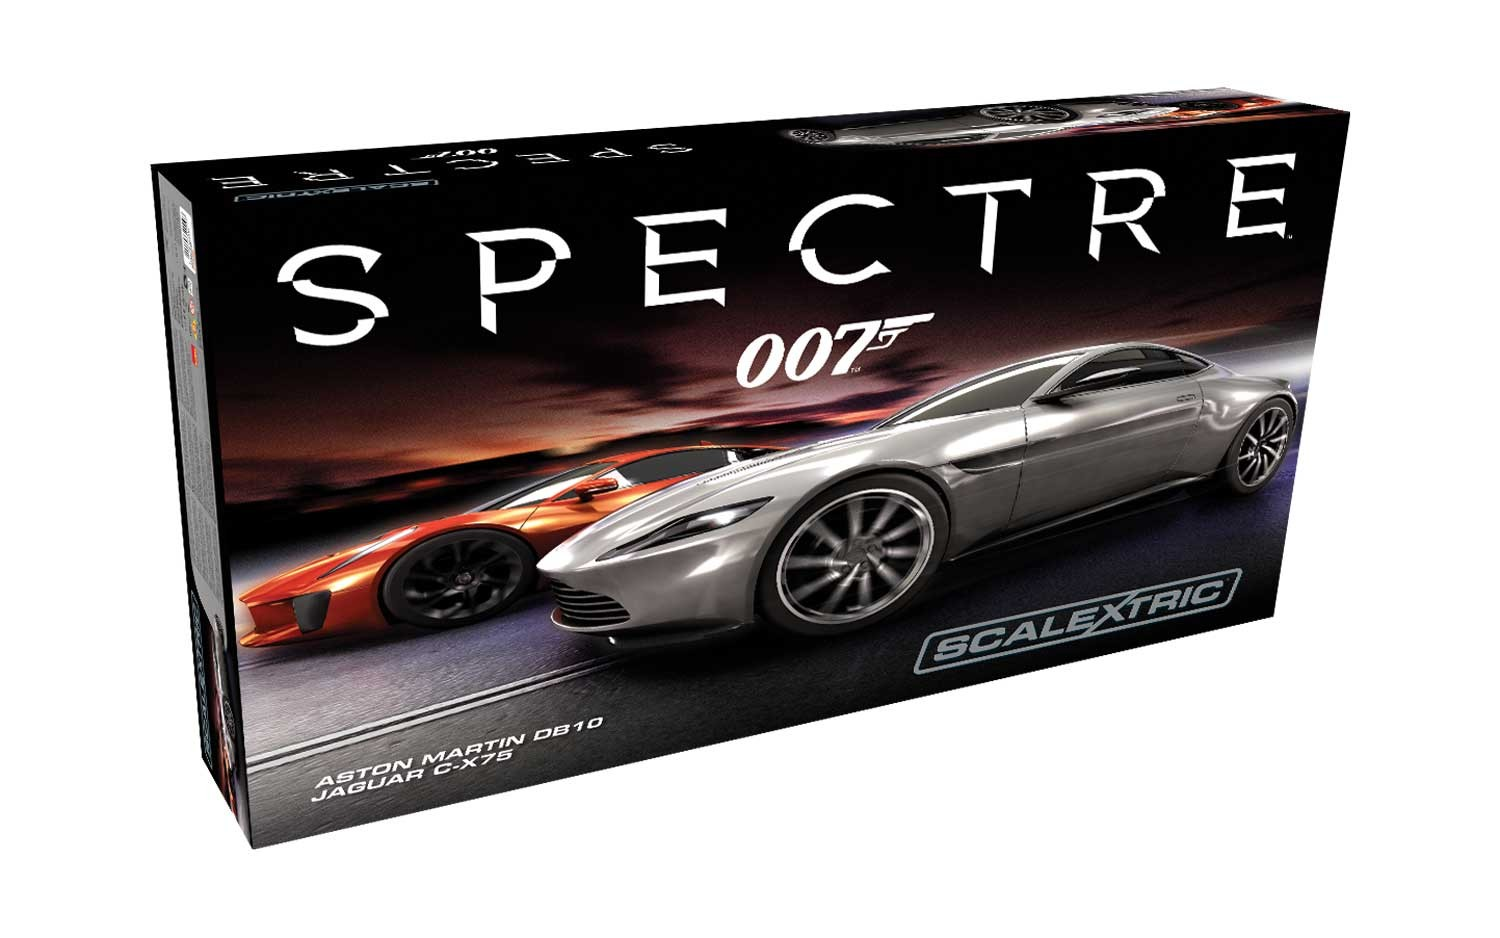 aston martin db10 scale model with Scalextric Spectre Uk Scale Models Set By Jaguar 132 Scale on En Uk additionally Aston Martin Supercar Confirmed With Hybrid Assistance Going On Sale In 2020 124212 moreover Corgi 1 36 James Bond Spectre Twin Set Aston Martin Db5 And Db10 likewise Aston Martin Db10 Die Cast Model Cars moreover This Old Toyota Corolla Really Should Have Been The New 1666712675.